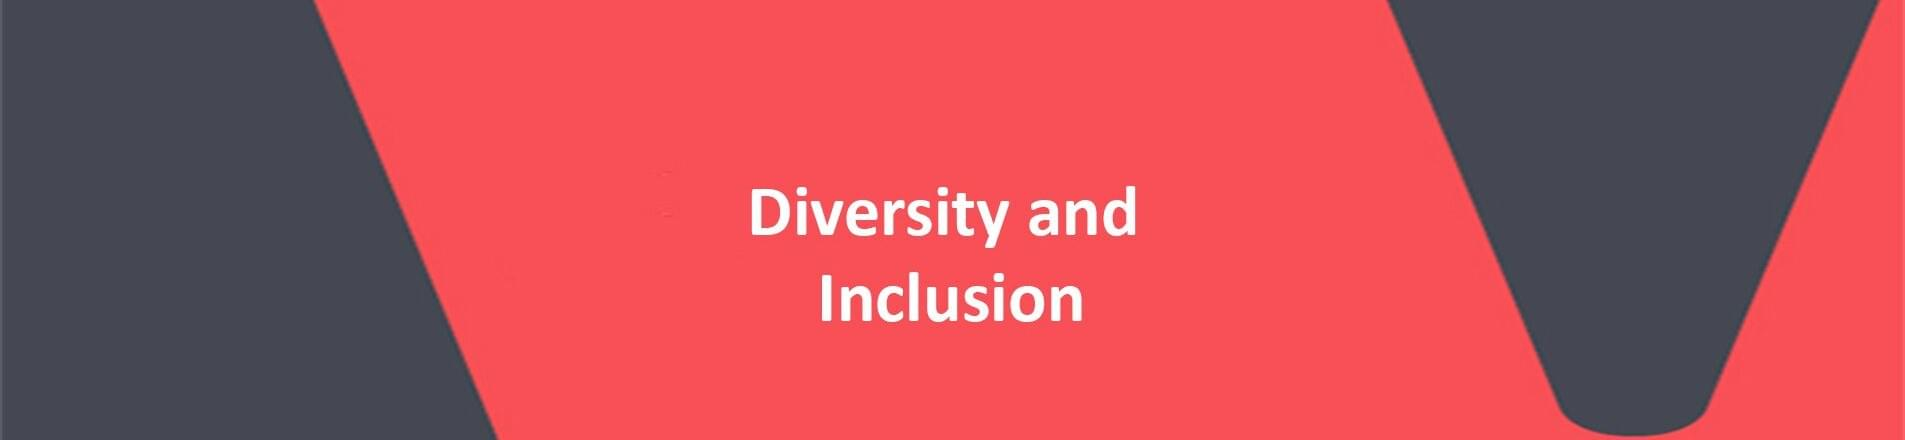 Diversity and Inclusion.